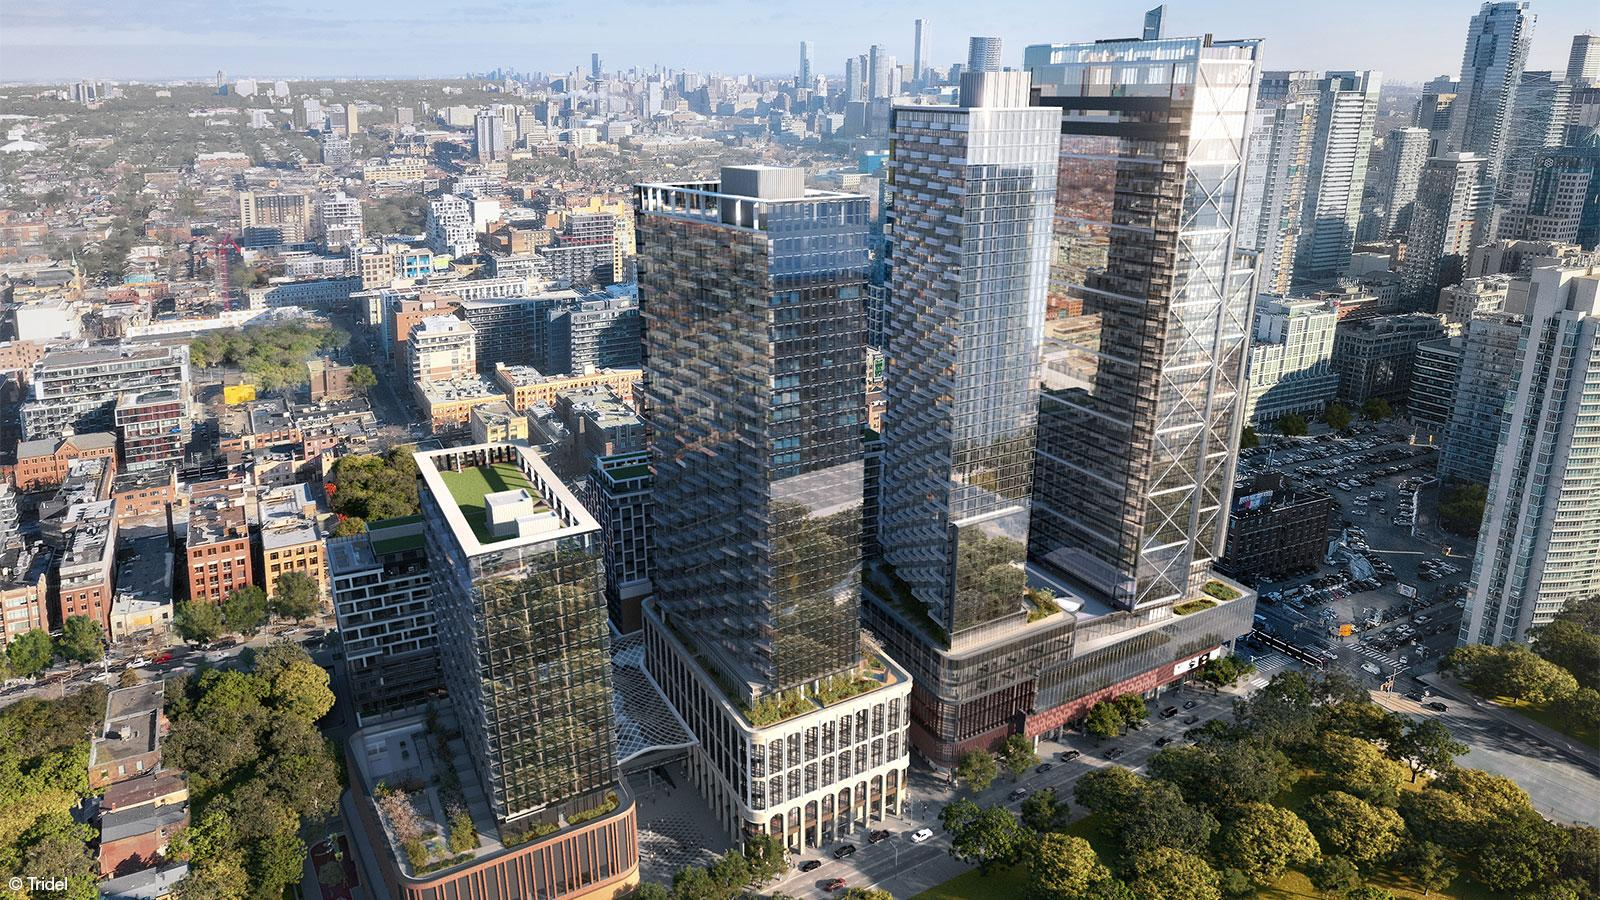 aerial rendering of a development with four high rise towers, each with their own podium of different styles, located in an urban environment